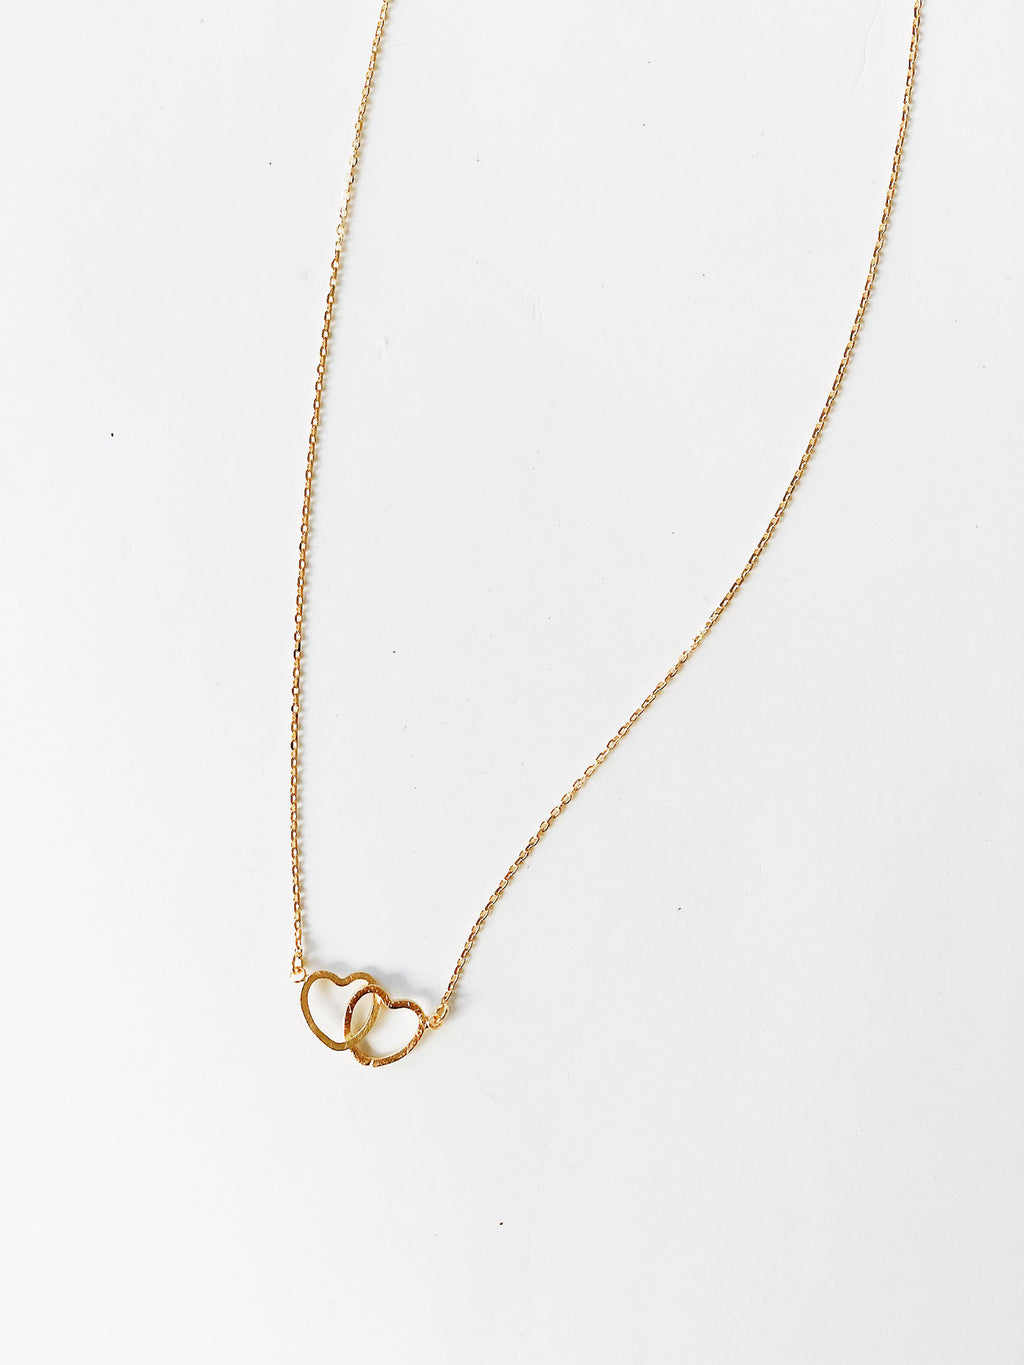 Infinity Hearts Necklace - Stitch And Feather